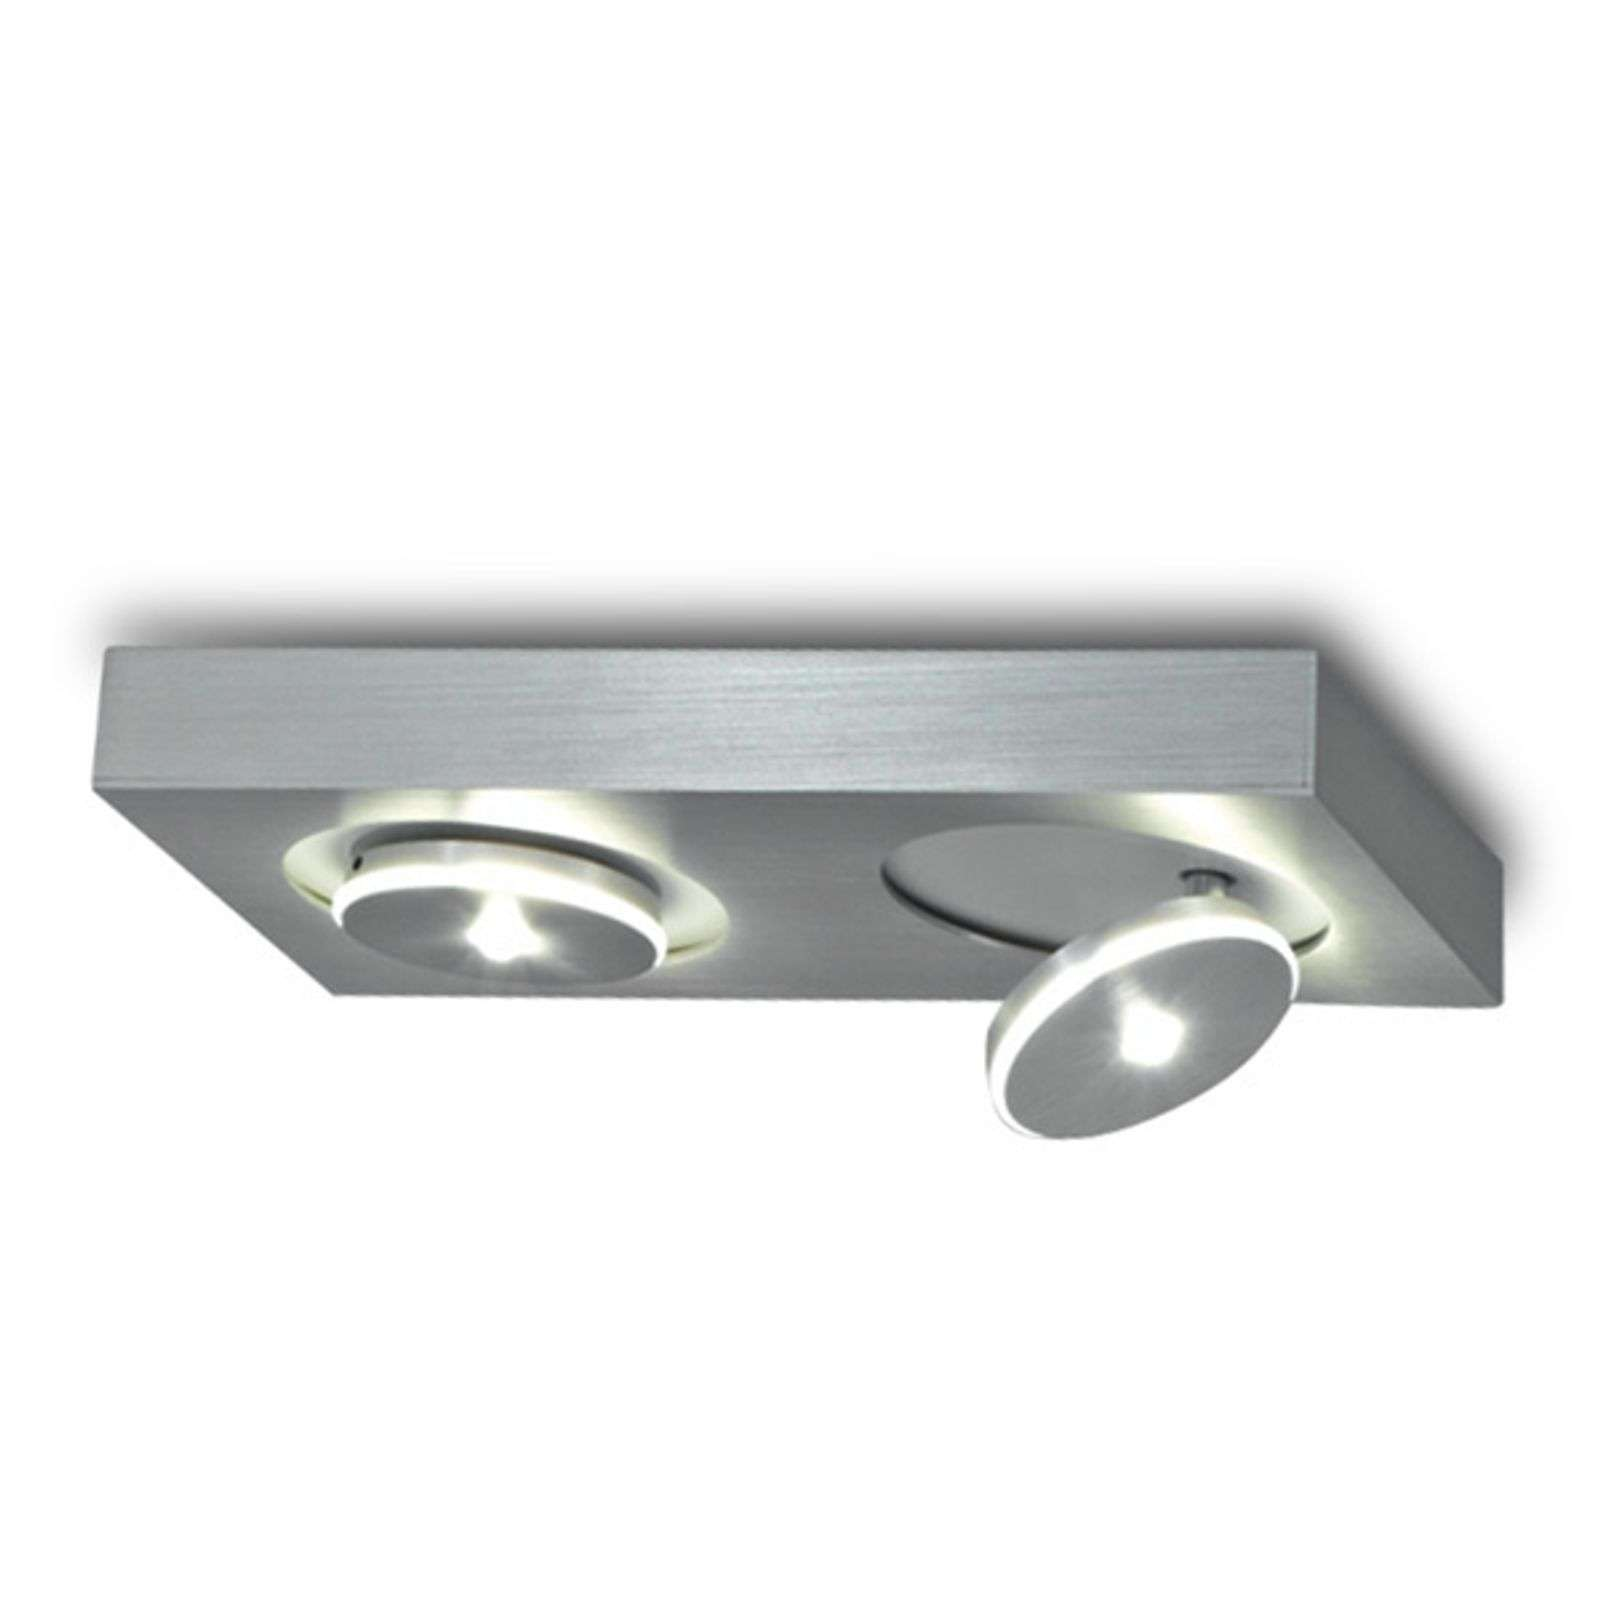 Moderne plafondlamp Spot It met LED